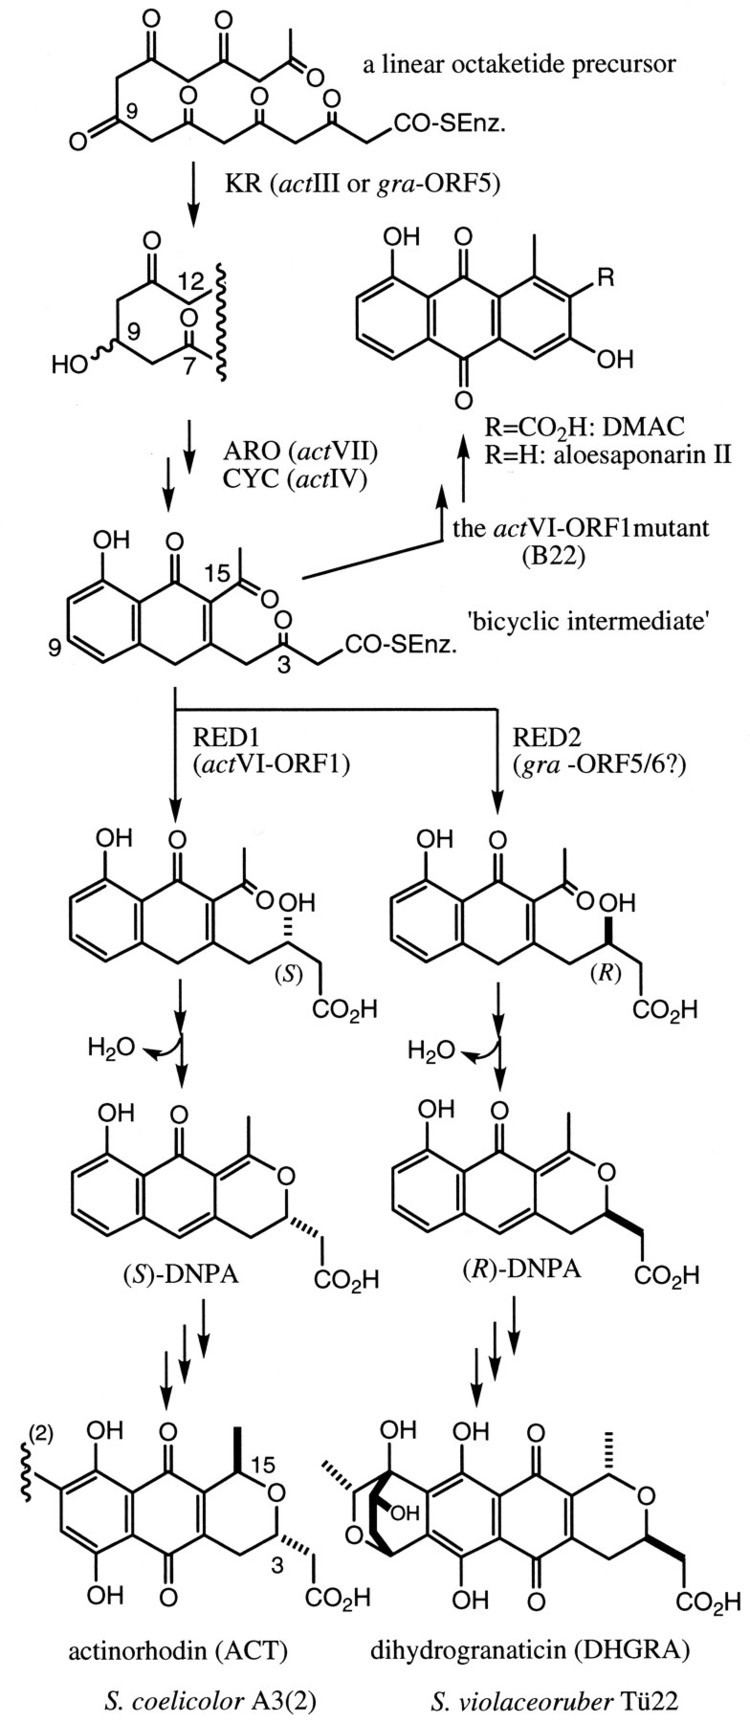 Actinorhodin Functional Complementation of Pyran Ring Formation in Actinorhodin